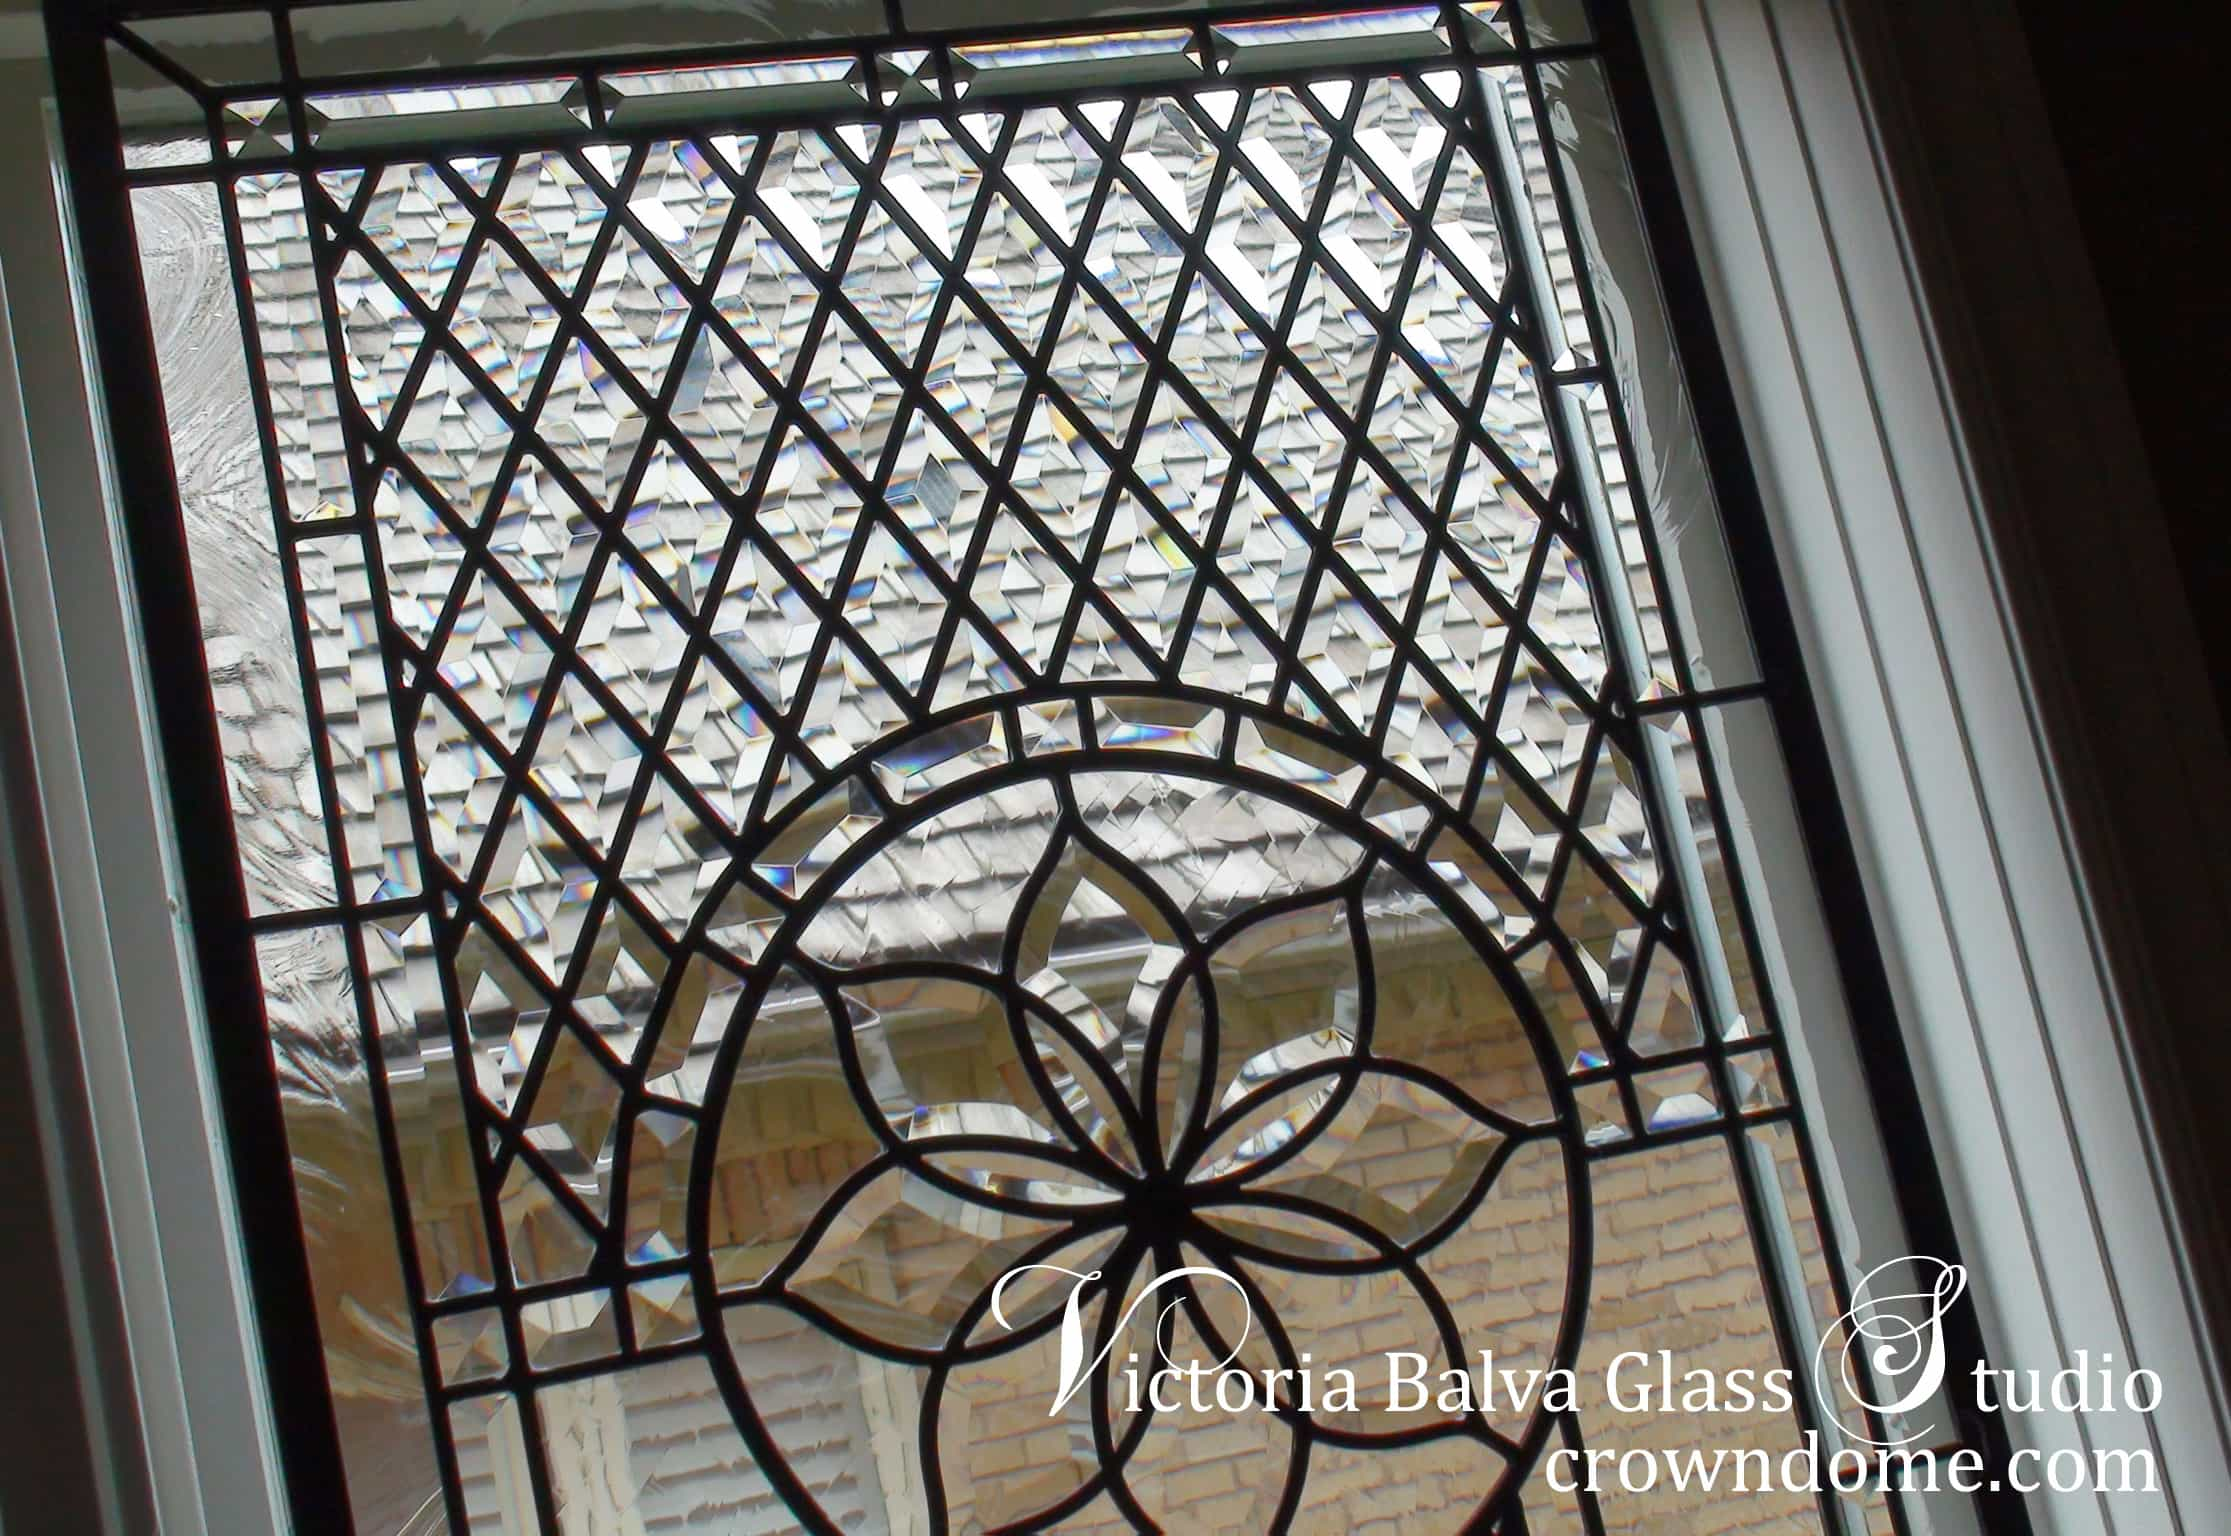 Custom beveled leaded glass window design for a dining room of a private house to add privacy and beauty to space. Clear beveled glass, intricate line work design by glass artist Victoria Balva